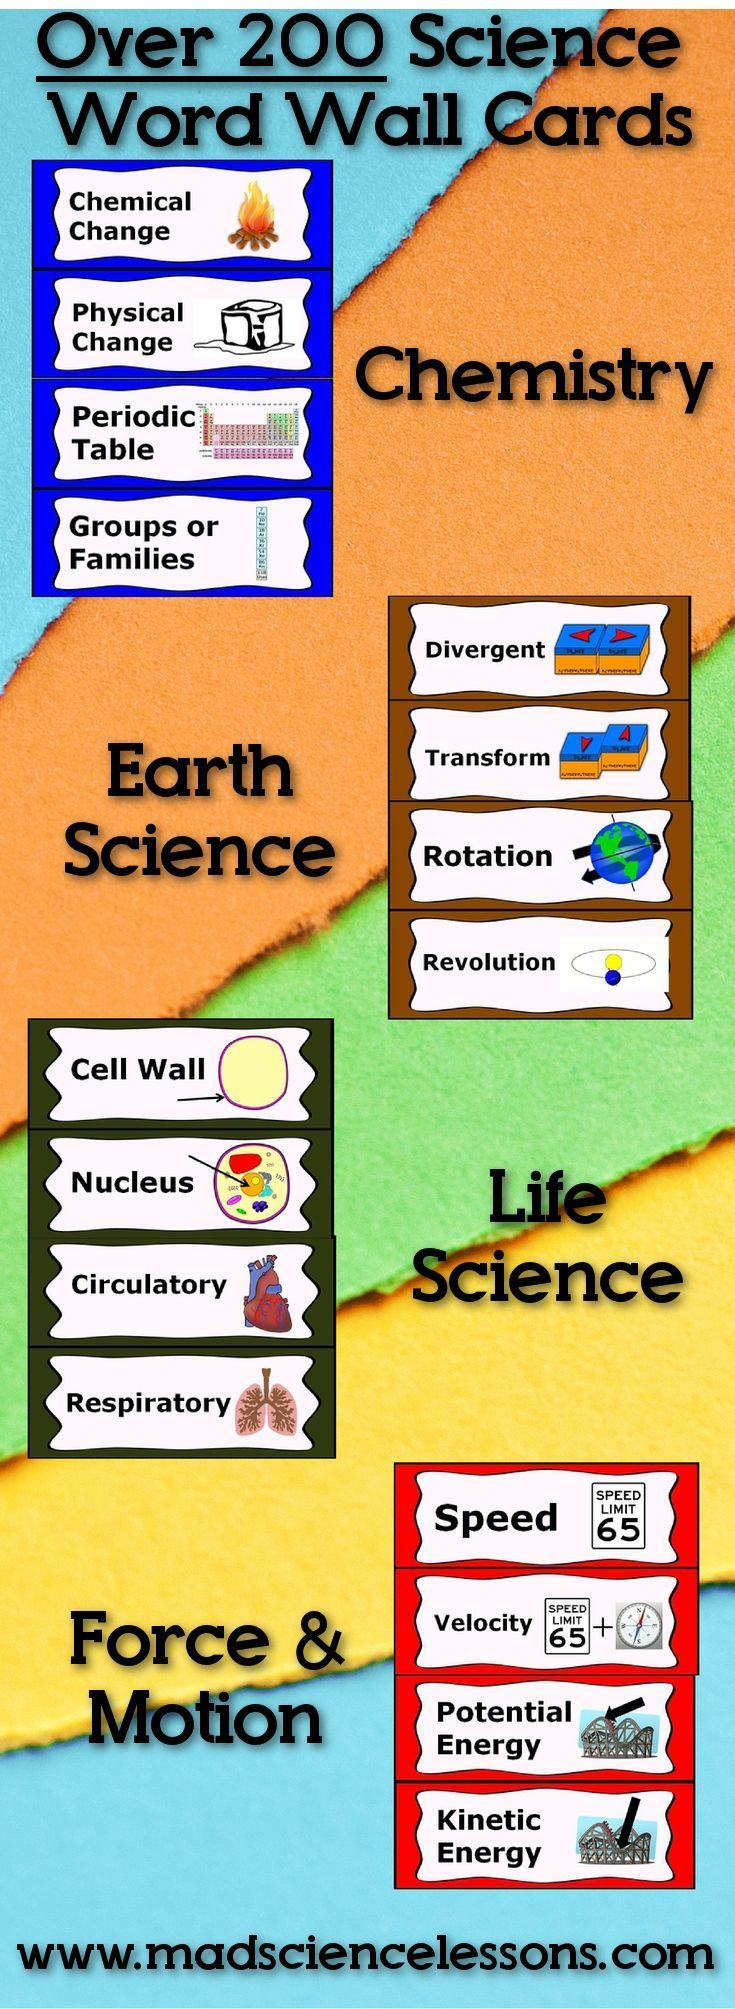 science terminology list Science dictionary, glossary and terms : corrosive - is the wearing away of the surface of a metal by chemical reactions with oxygen and water when a metal reacts with substances around it, such as water or air, it corrodes.